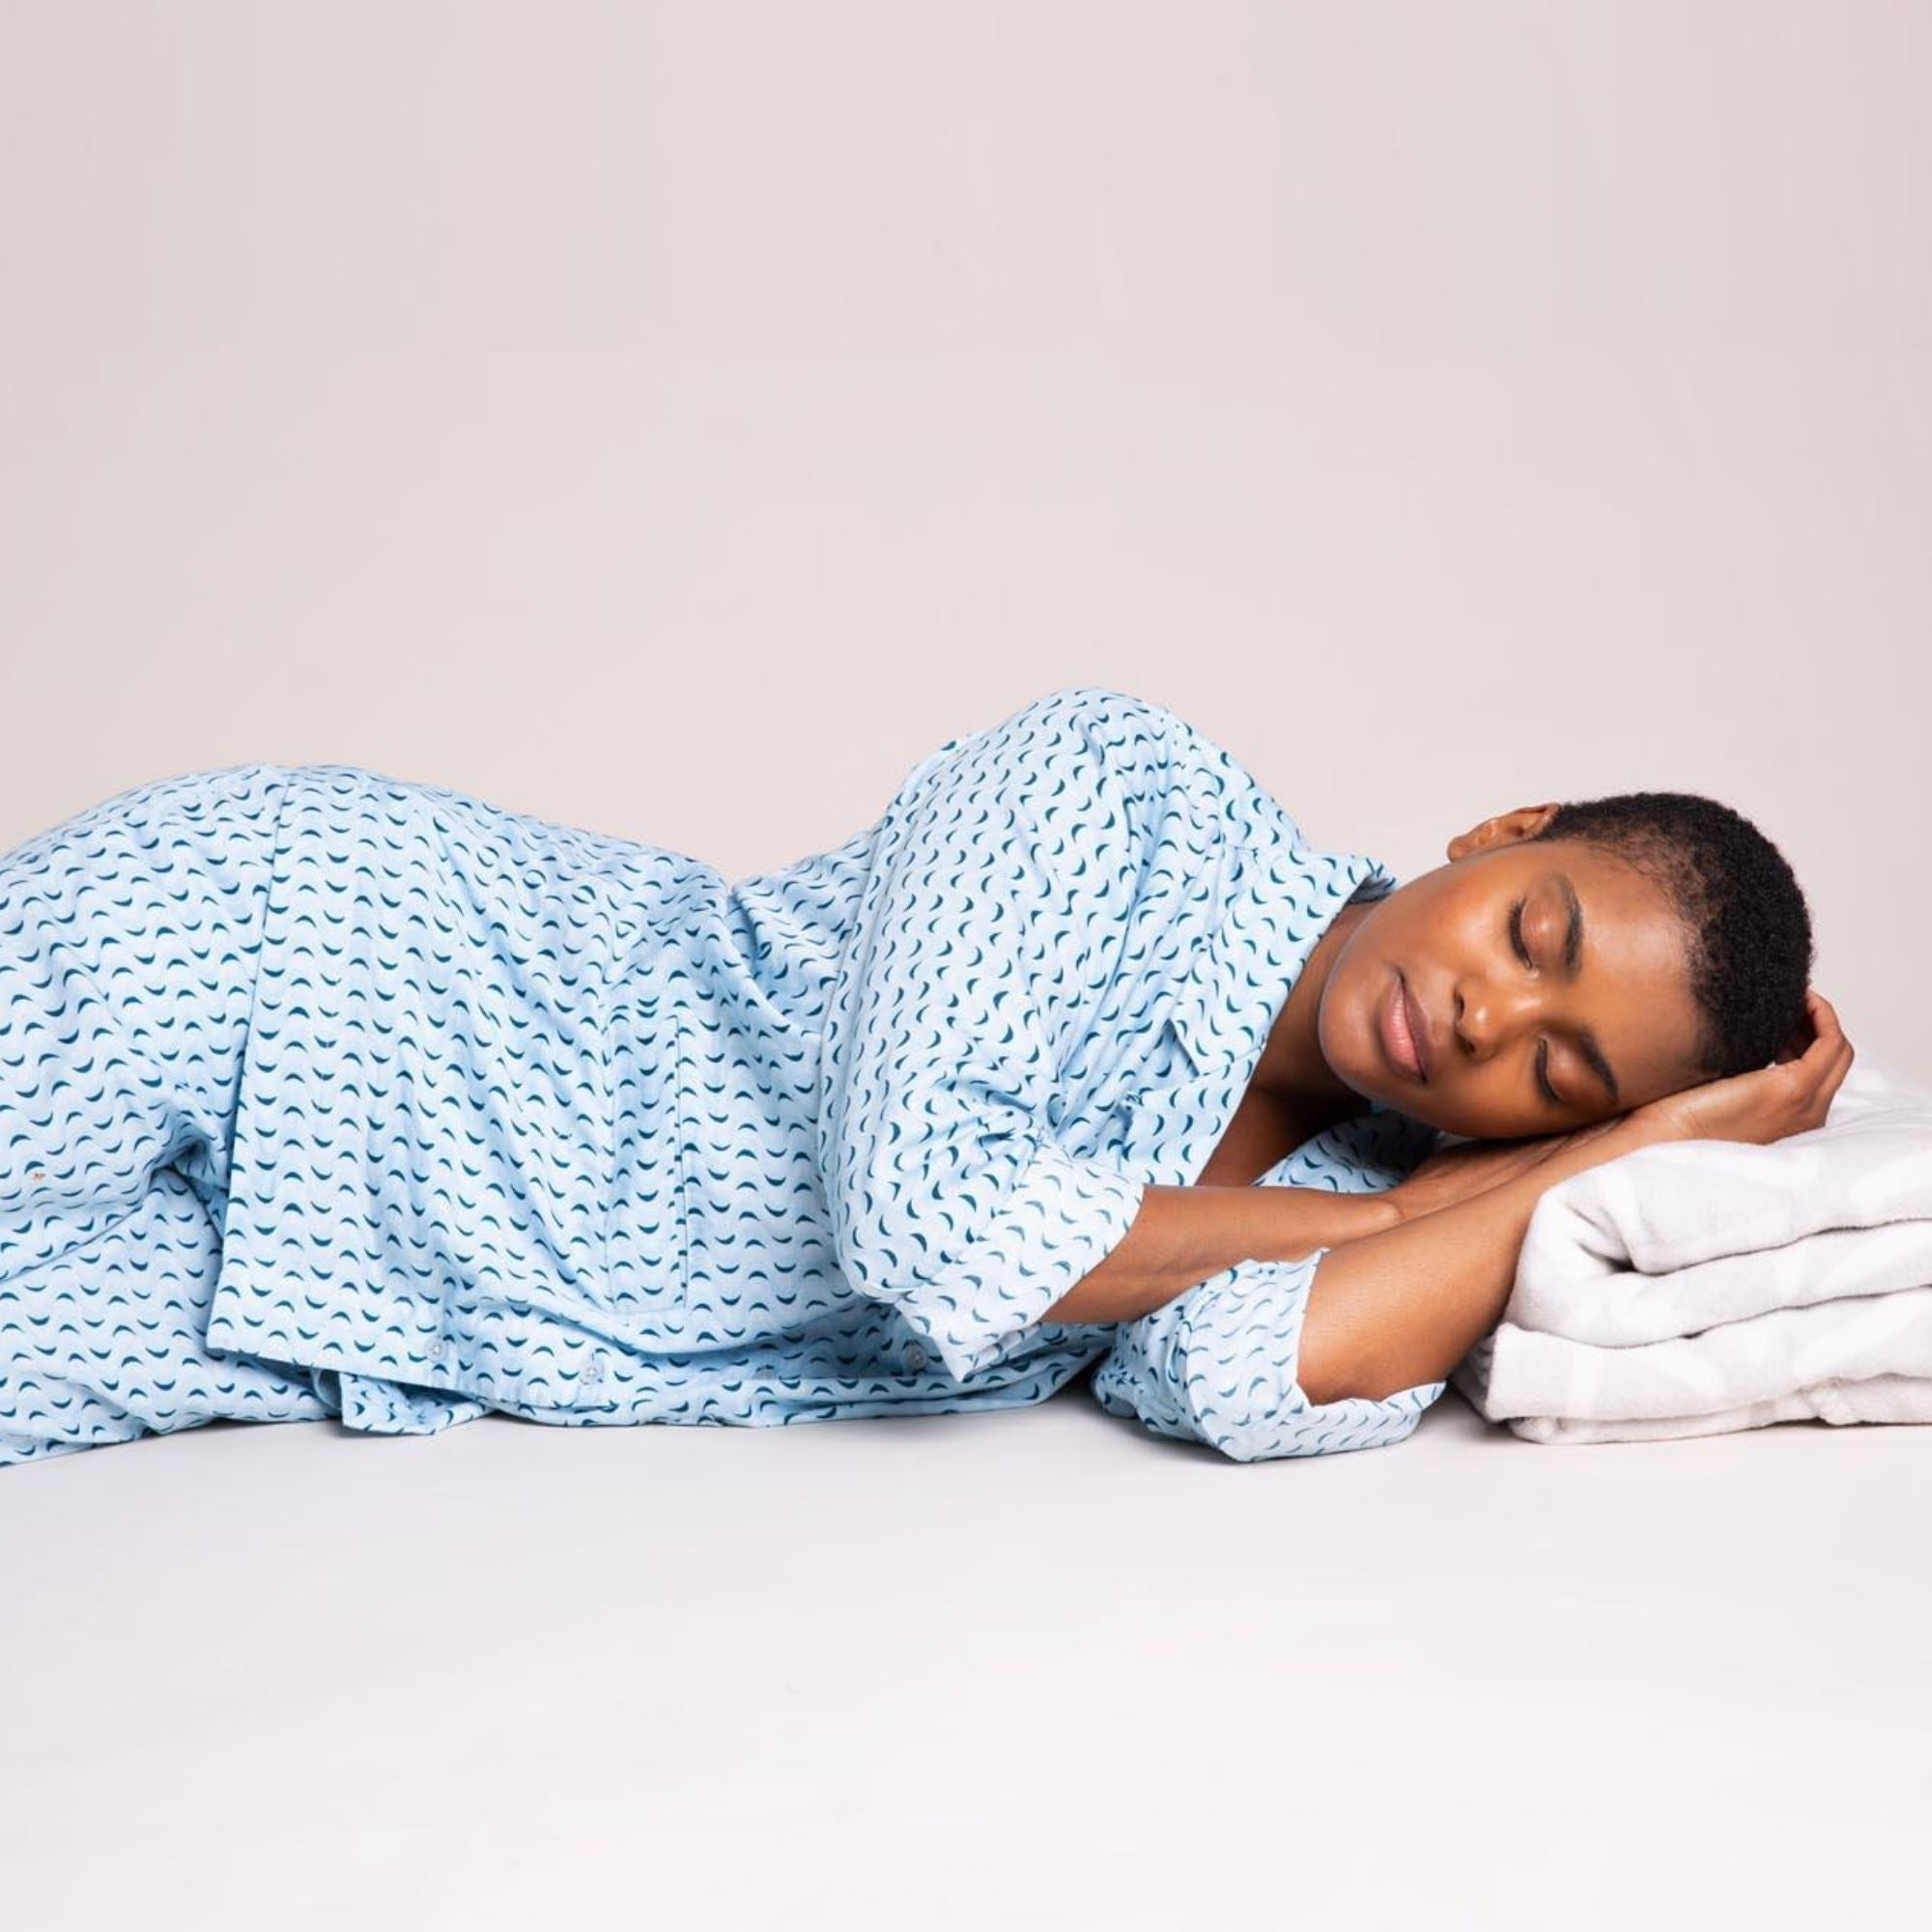 Notes from Yawn | Five tips for a great night's sleep